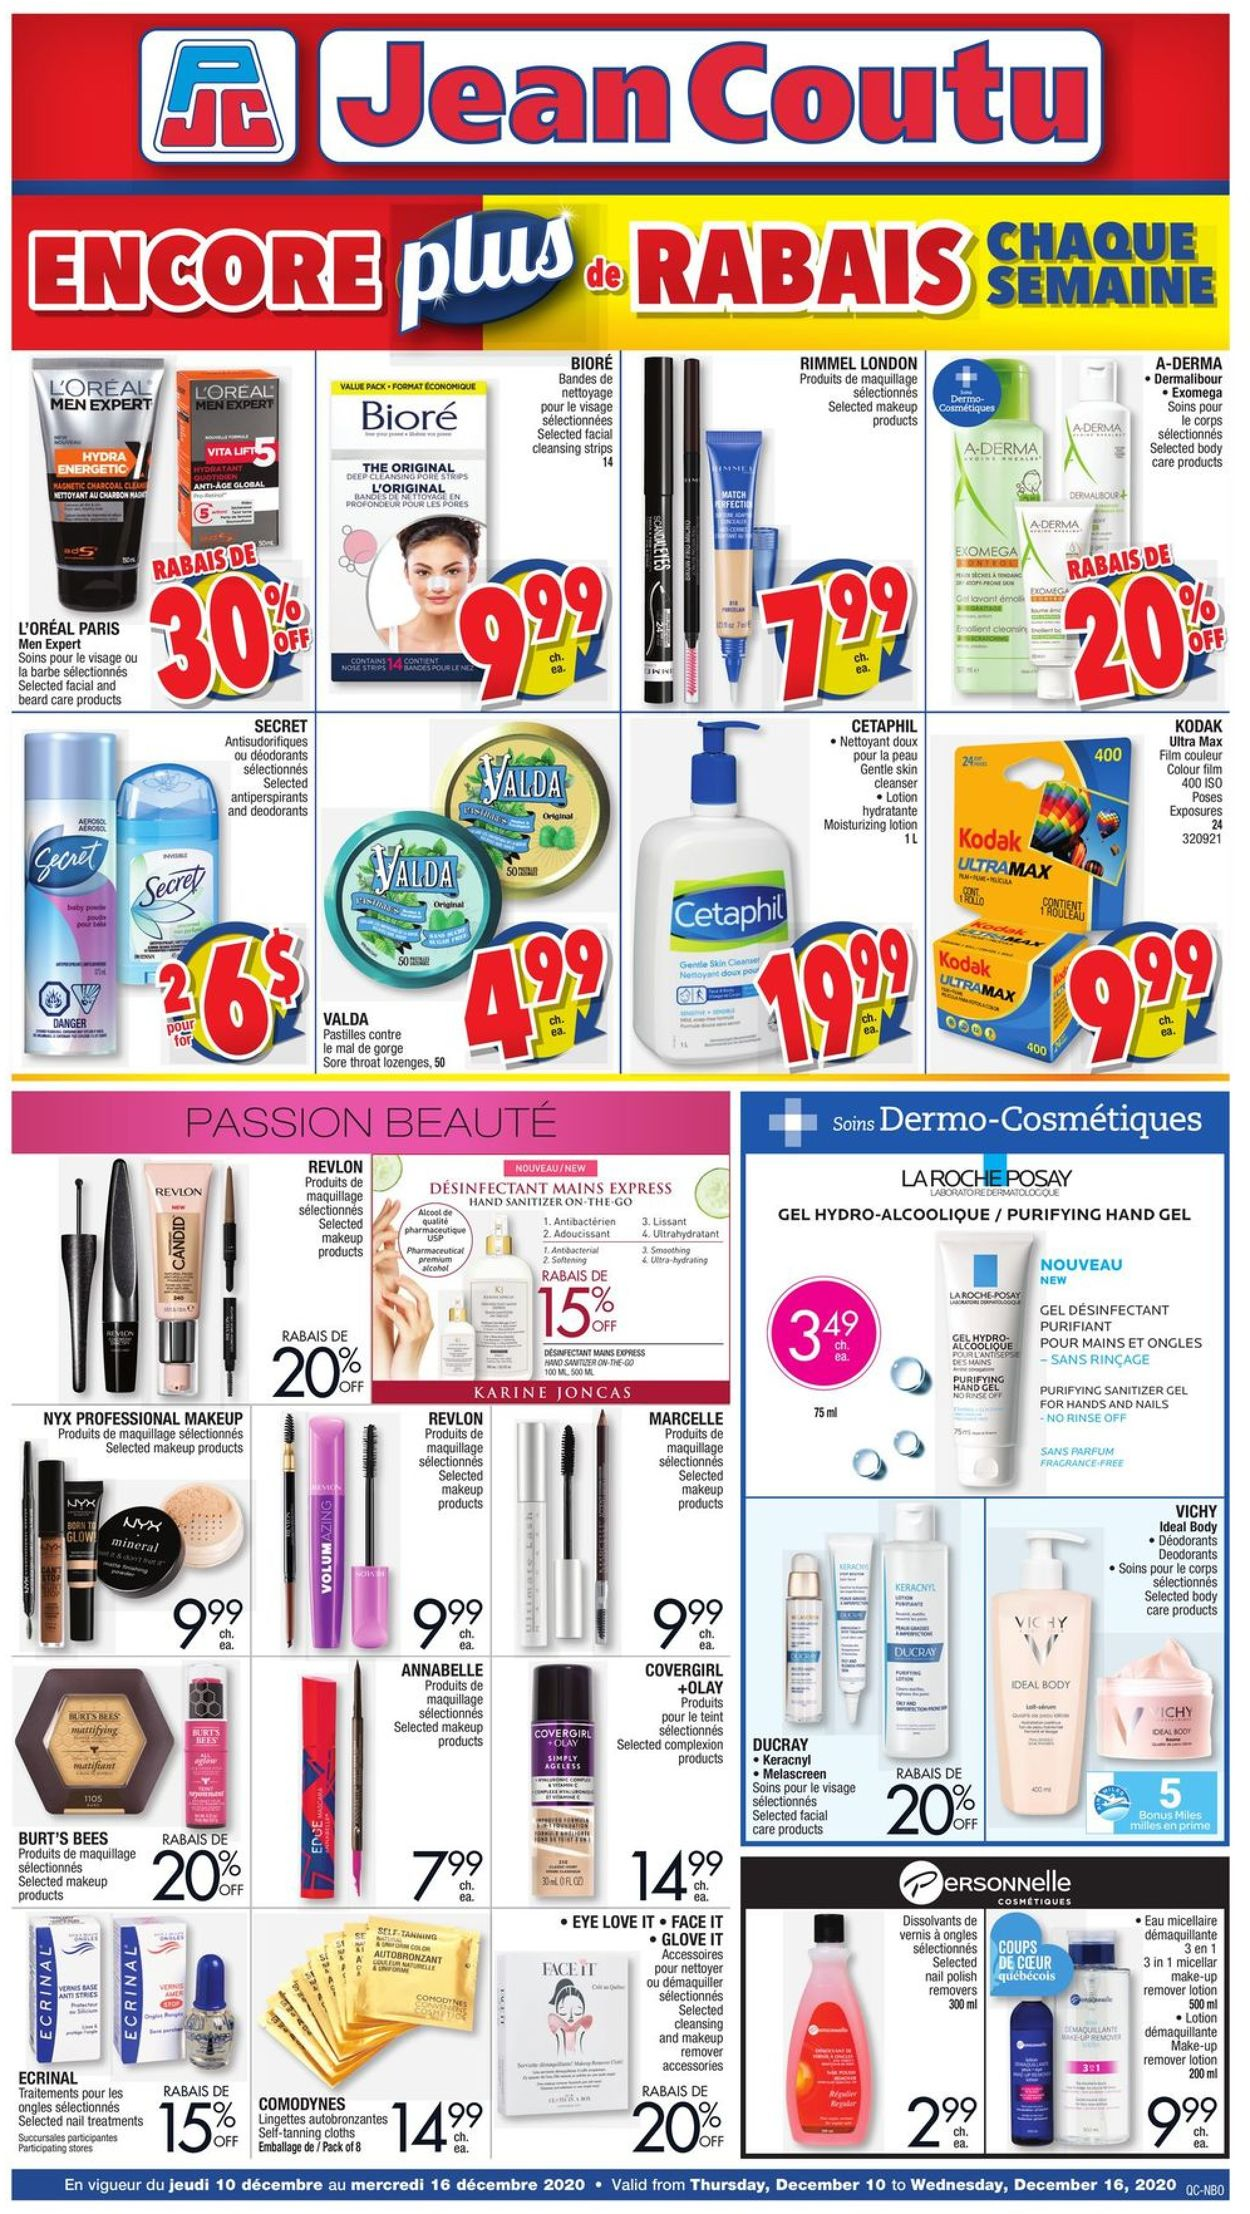 Jean Coutu - Holiday 2020 Flyer - 12/10-12/16/2020